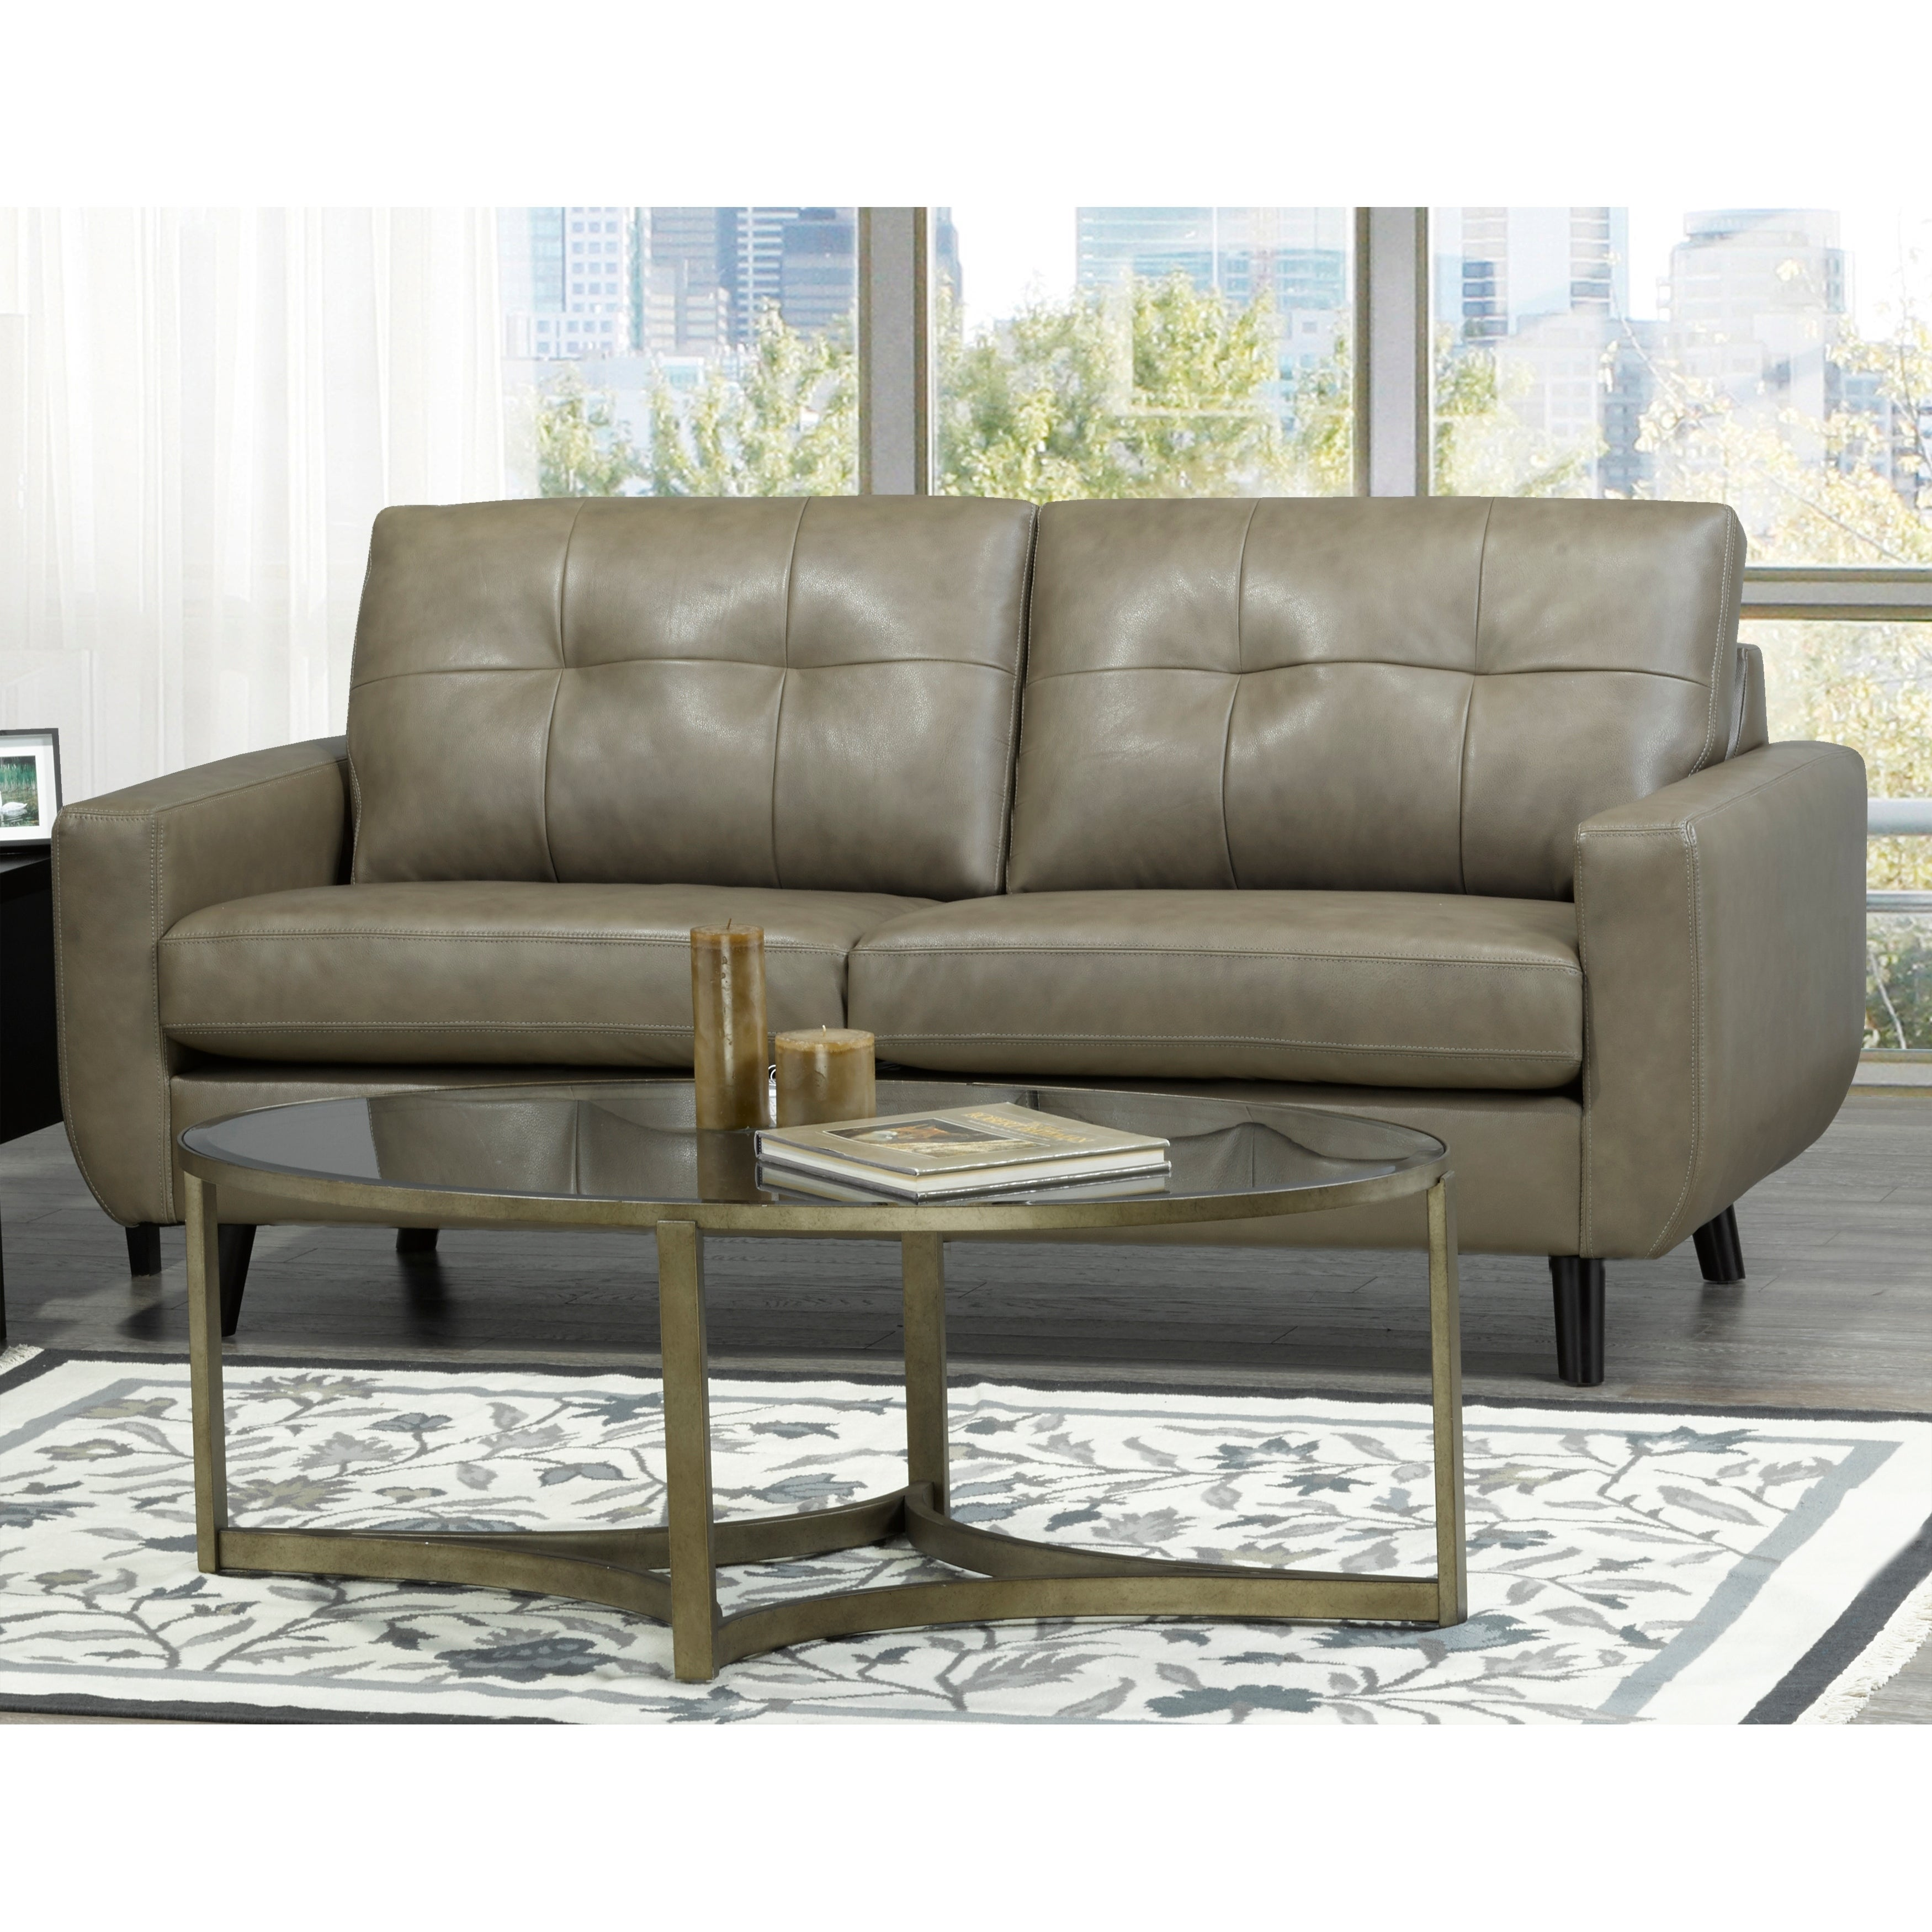 Magnificent Maisie Mid Century Modern Moss Green Grey Top Grain Italian Leather Tufted Sofa Loveseat And Chair Gamerscity Chair Design For Home Gamerscityorg